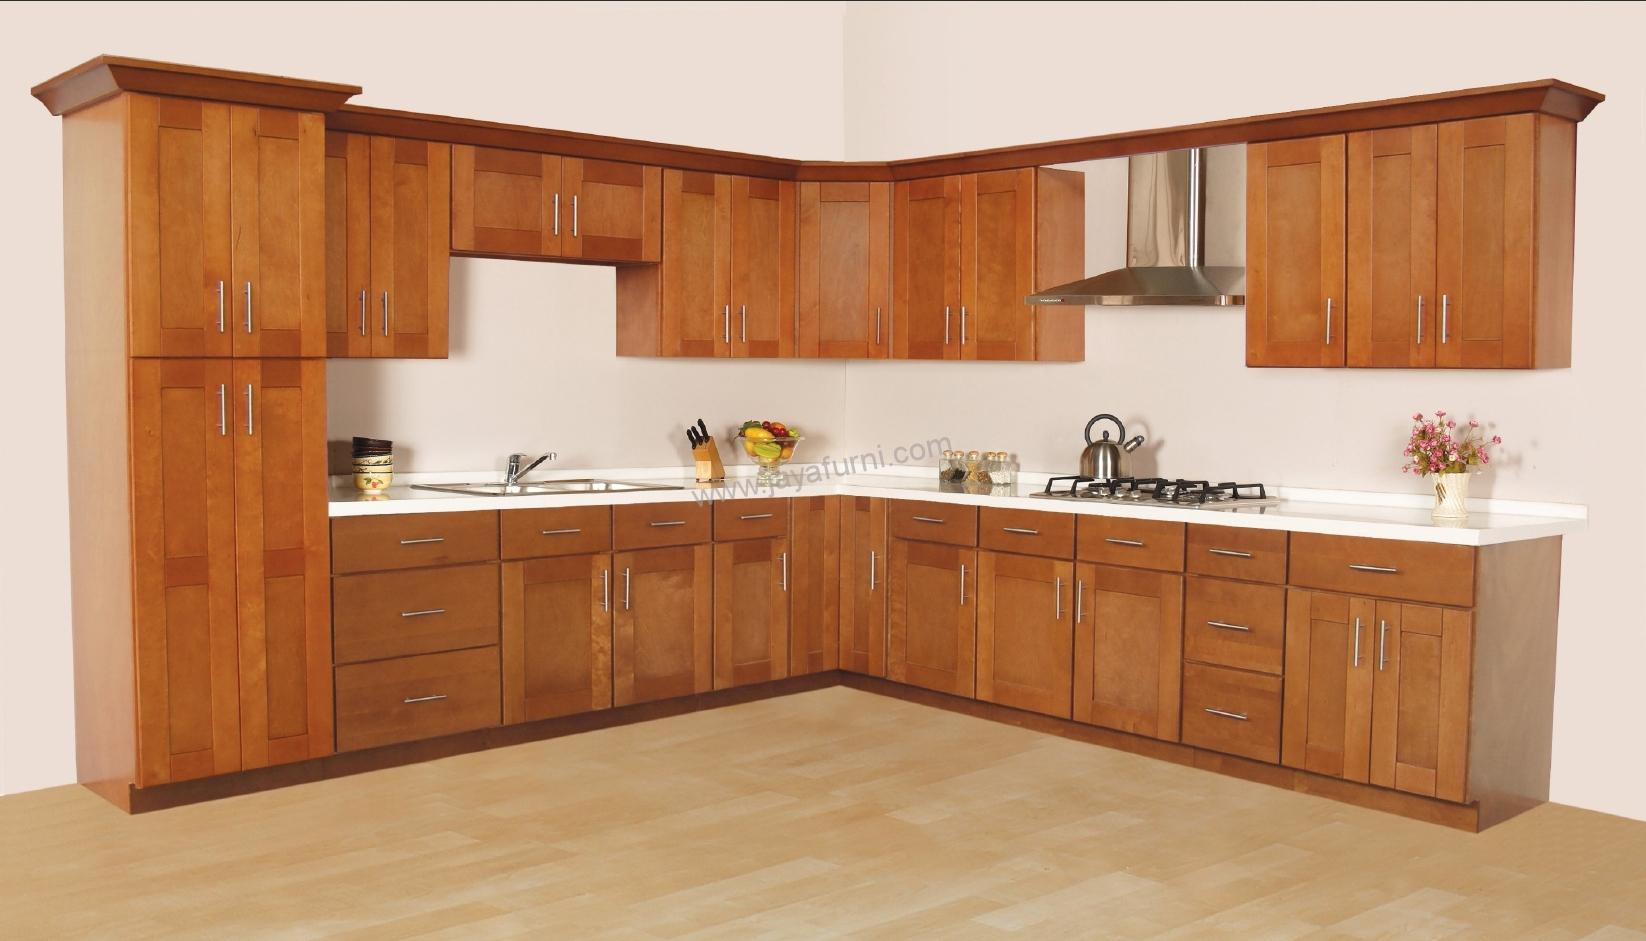 Kitchen set kayu jati rak dapur gantung minimalis for Kitchen set kayu